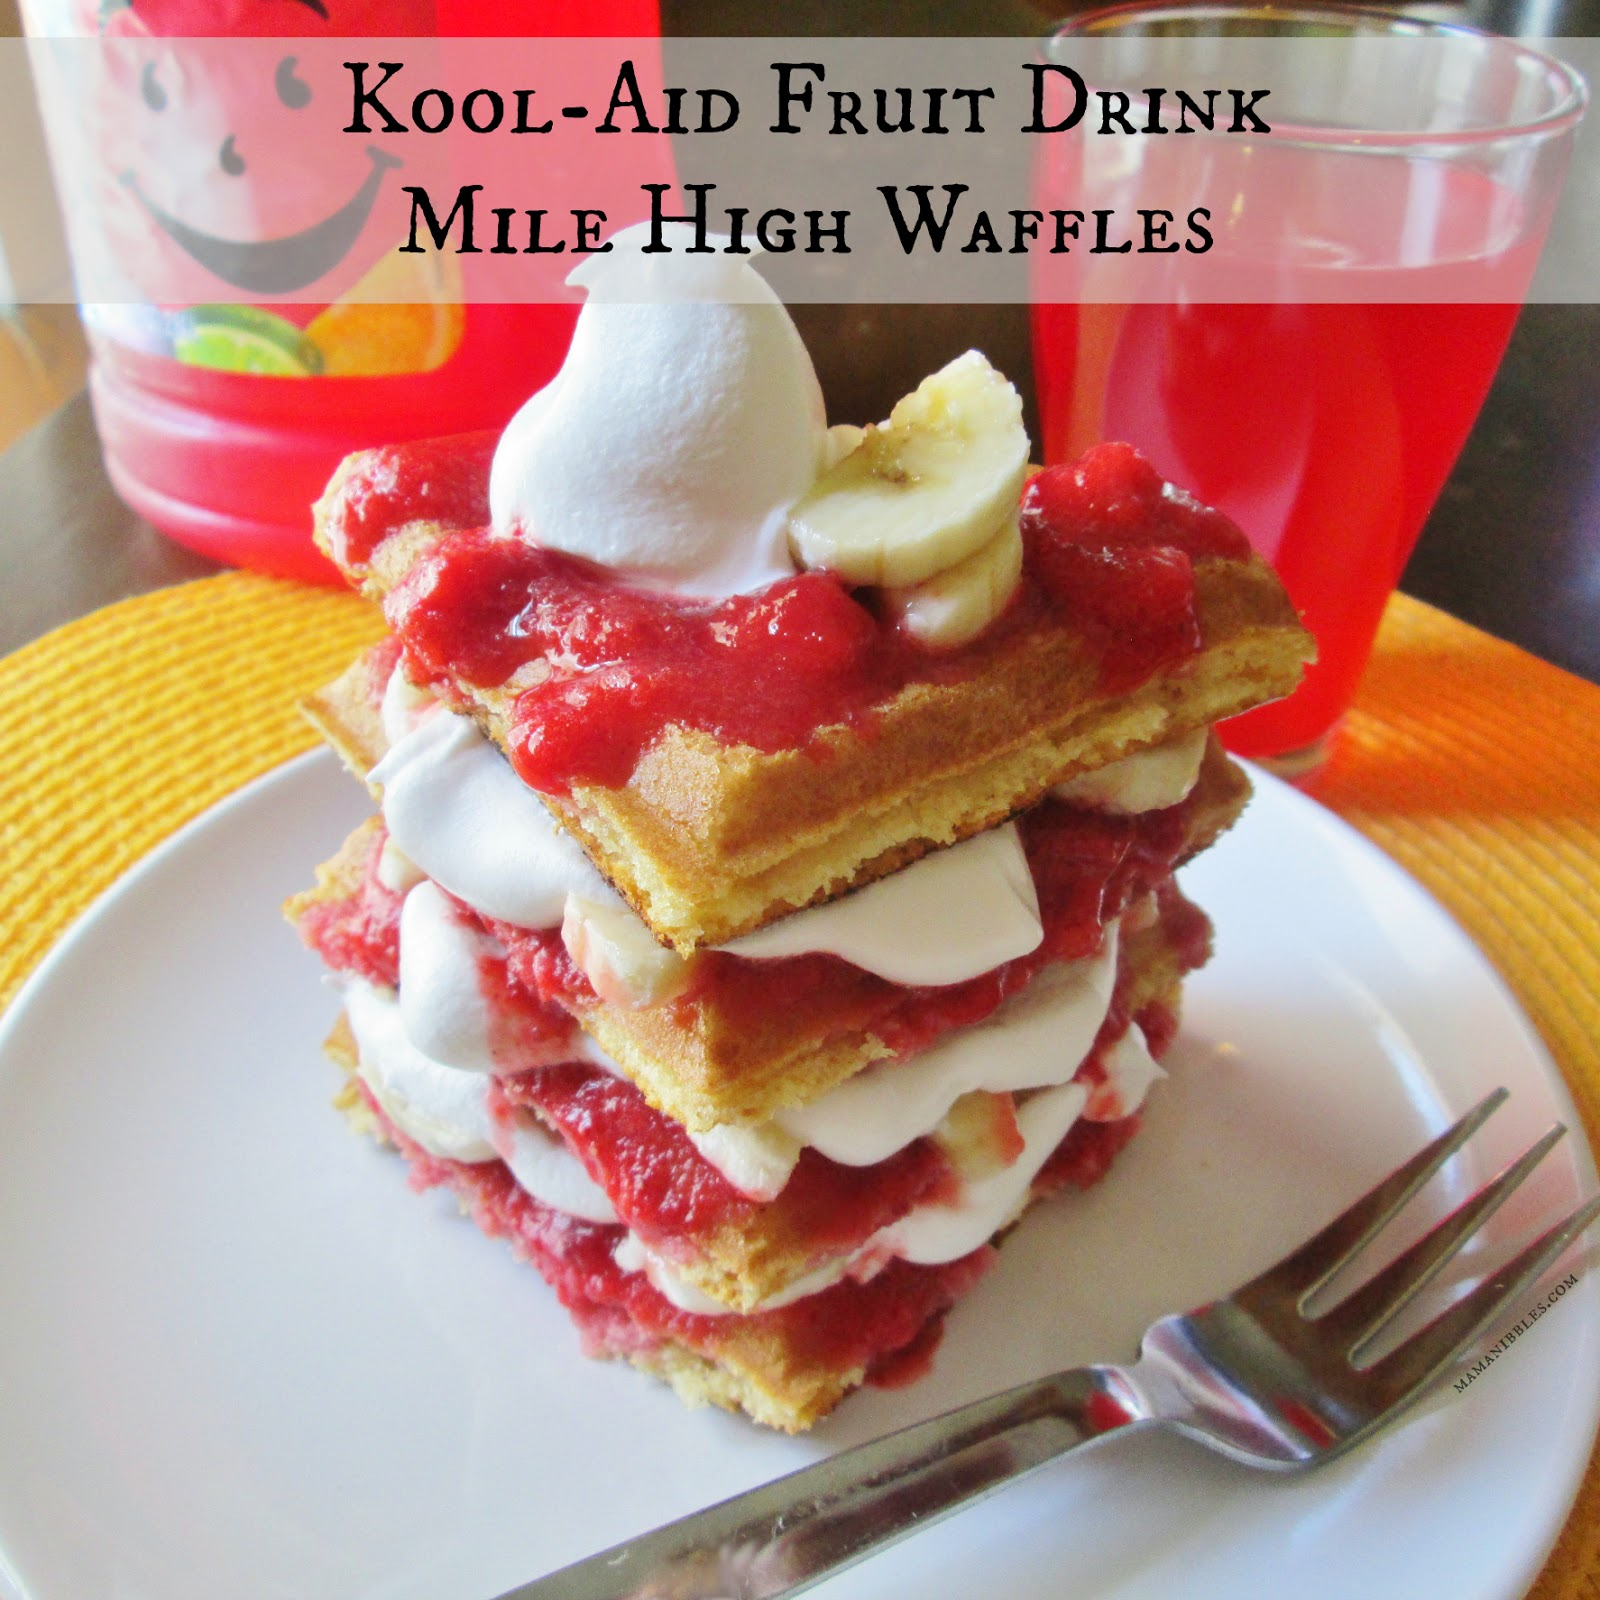 Kool-Aid Fruit Drink Mile High Waffles #KoolOff #shop #cbias